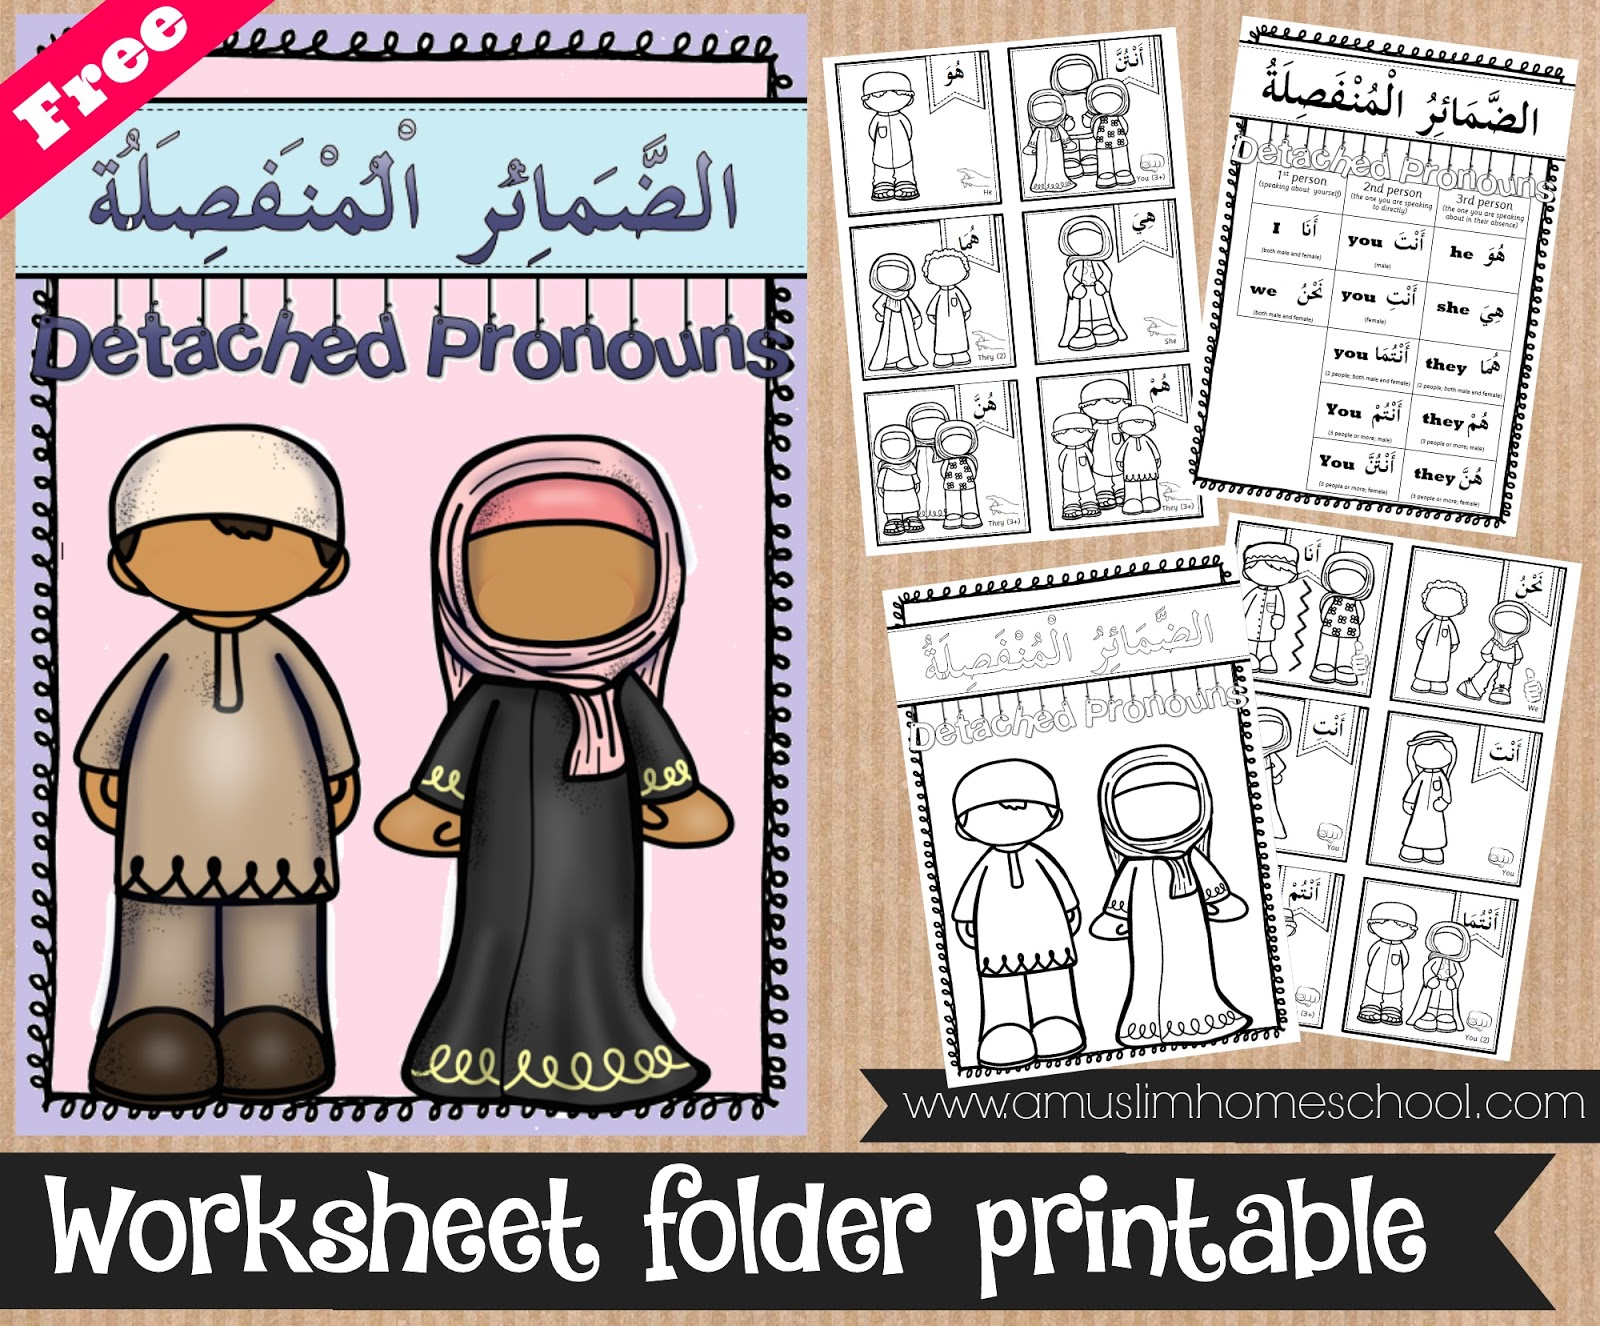 A Muslim Homeschool Arabic Detached Pronouns Worksheet